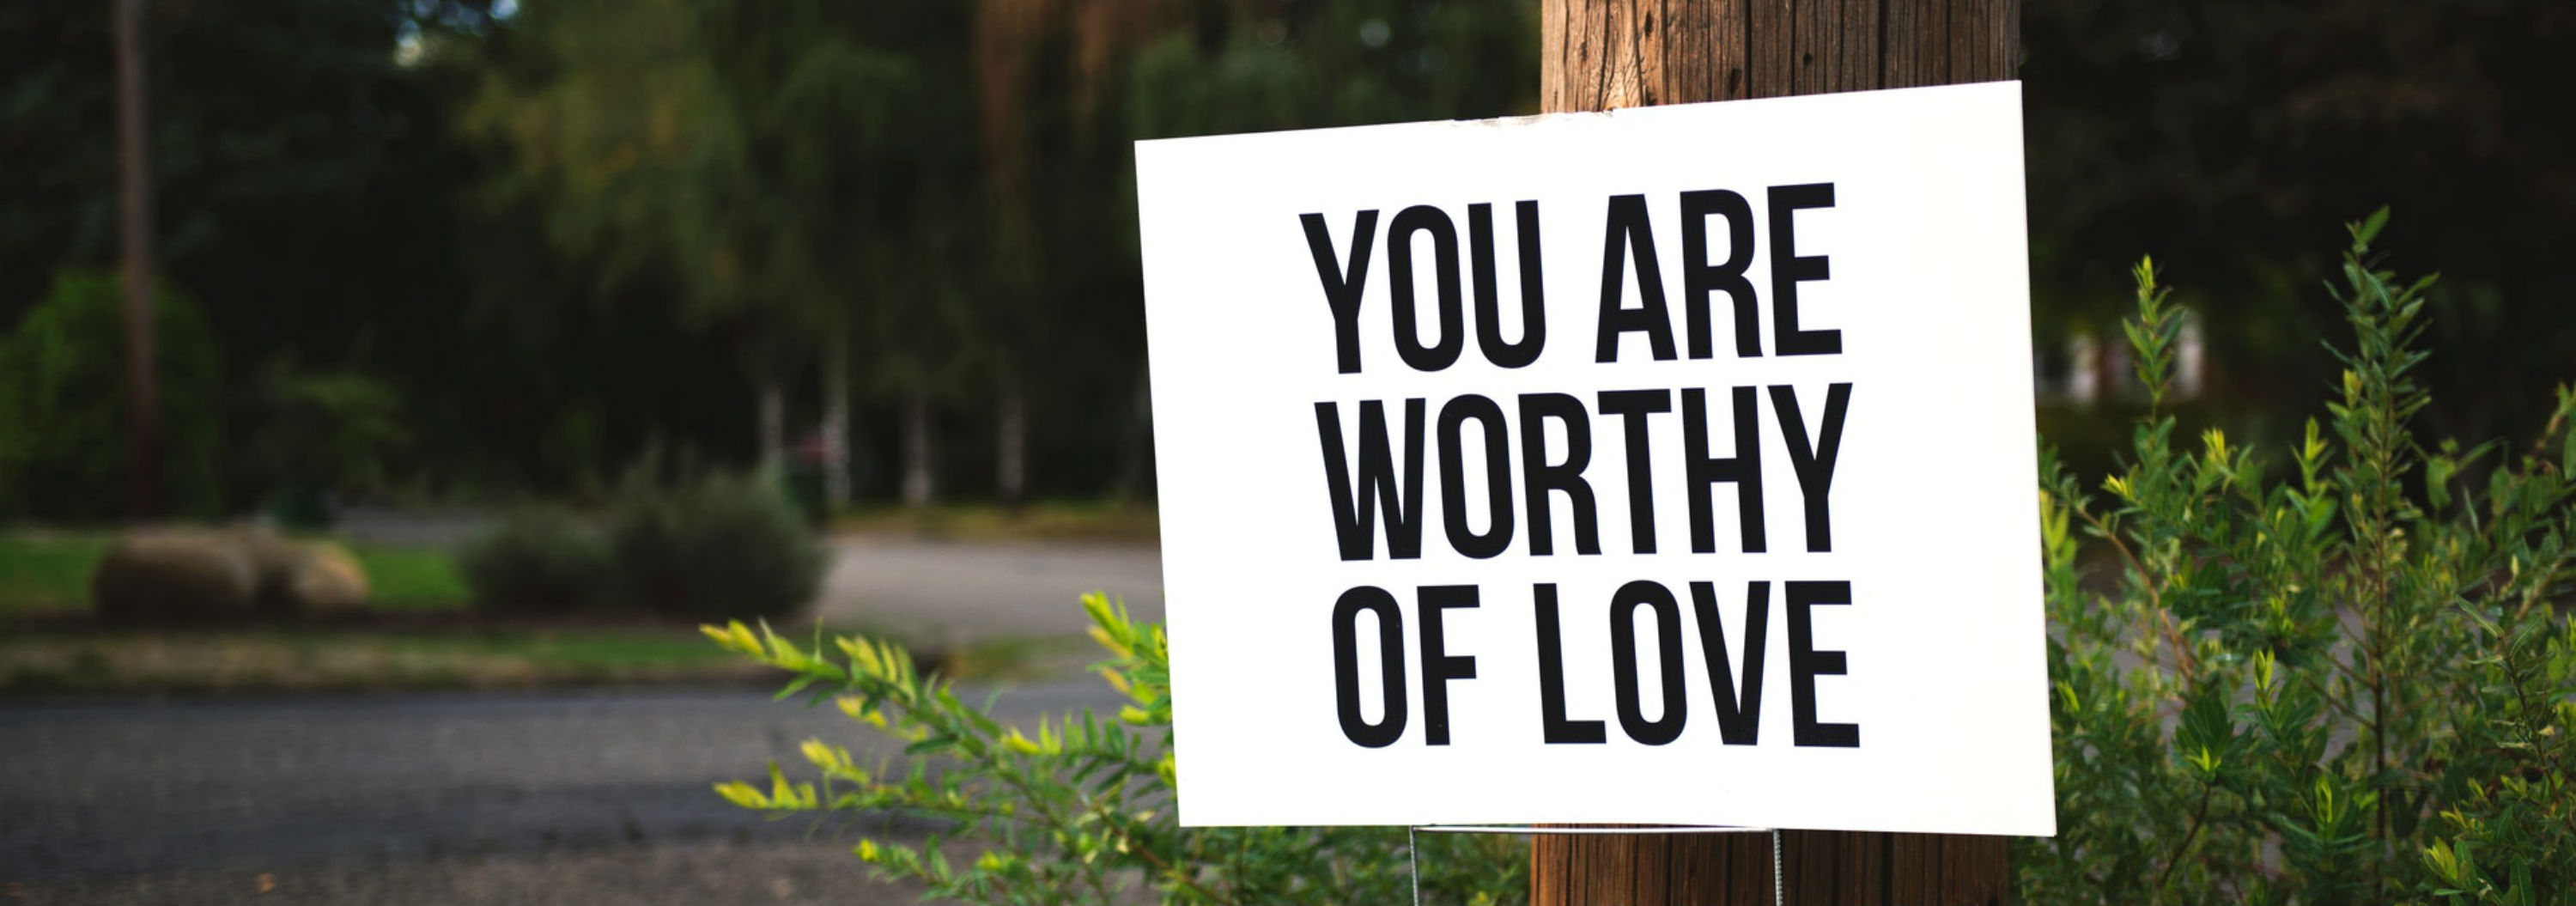 """Roadside sign reads """"you are worthy of love"""""""